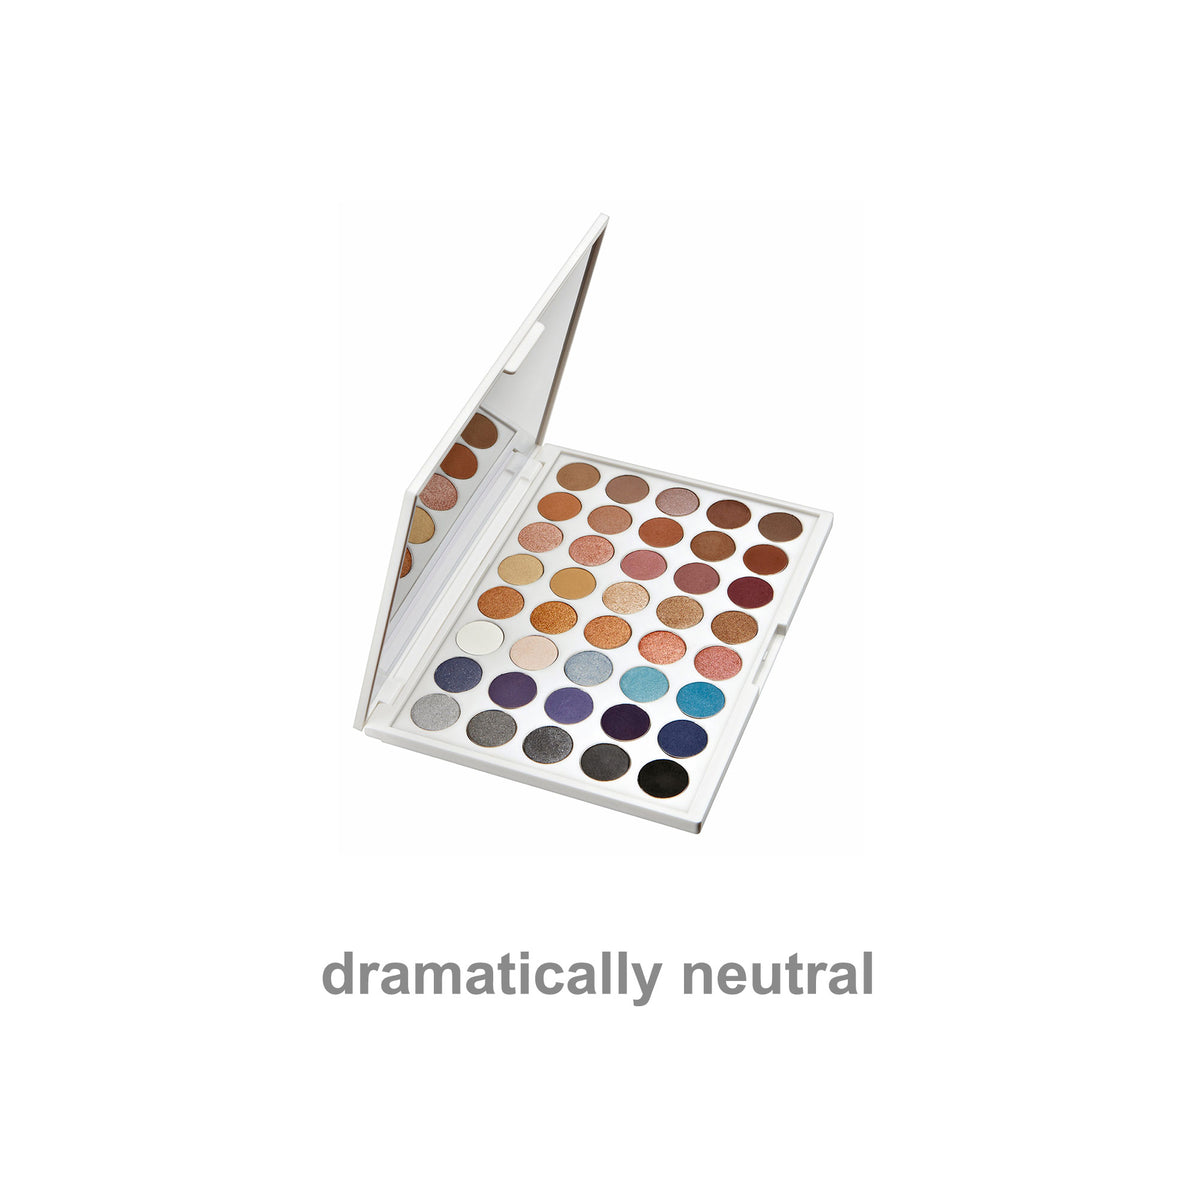 dramatically neutral